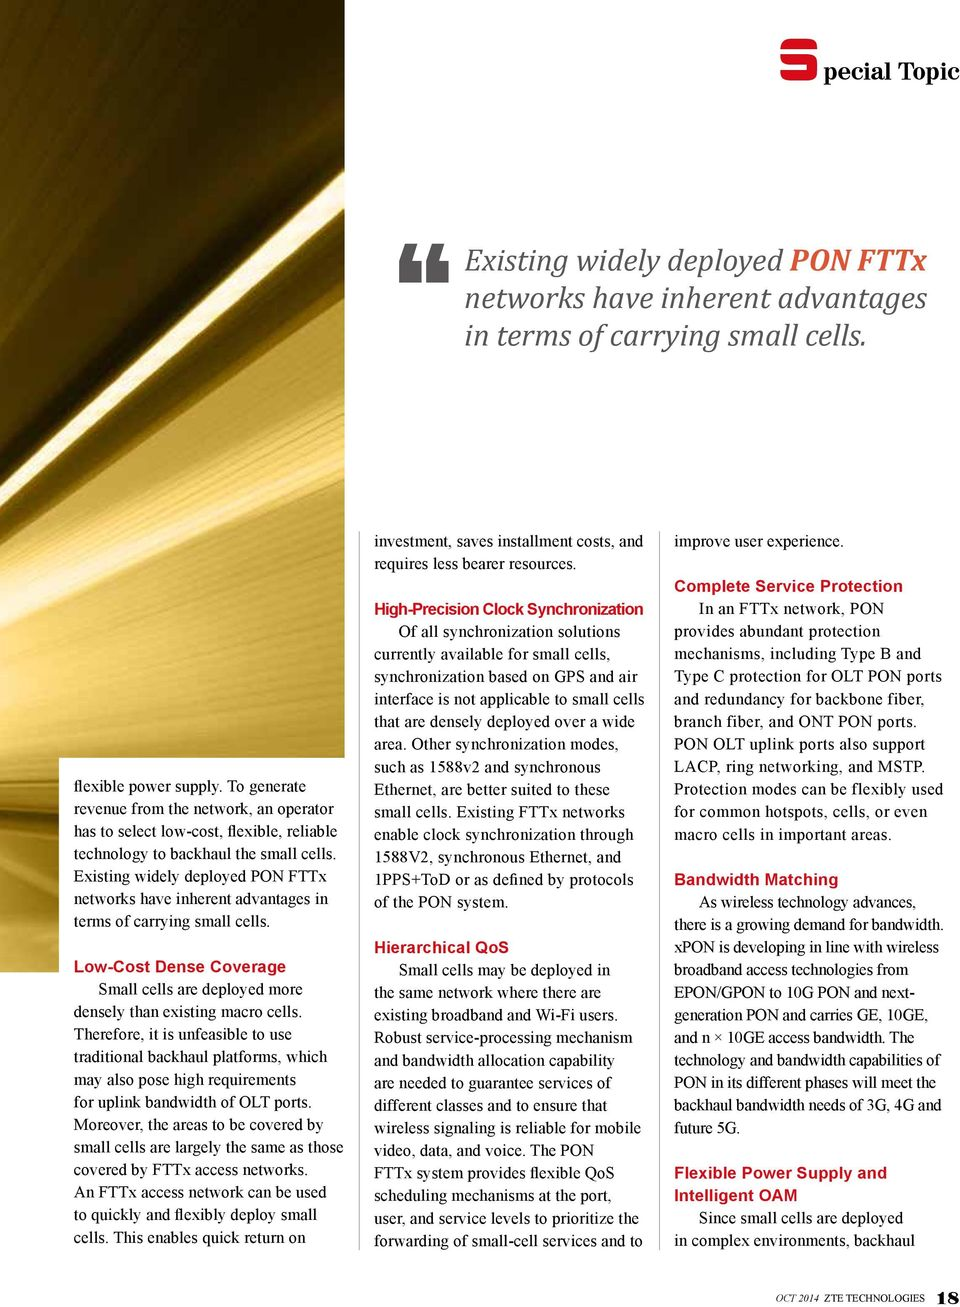 Existing widely deployed PON FTTx networks have inherent advantages in terms of carrying small cells. Low-Cost Dense Coverage Small cells are deployed more densely than existing macro cells.